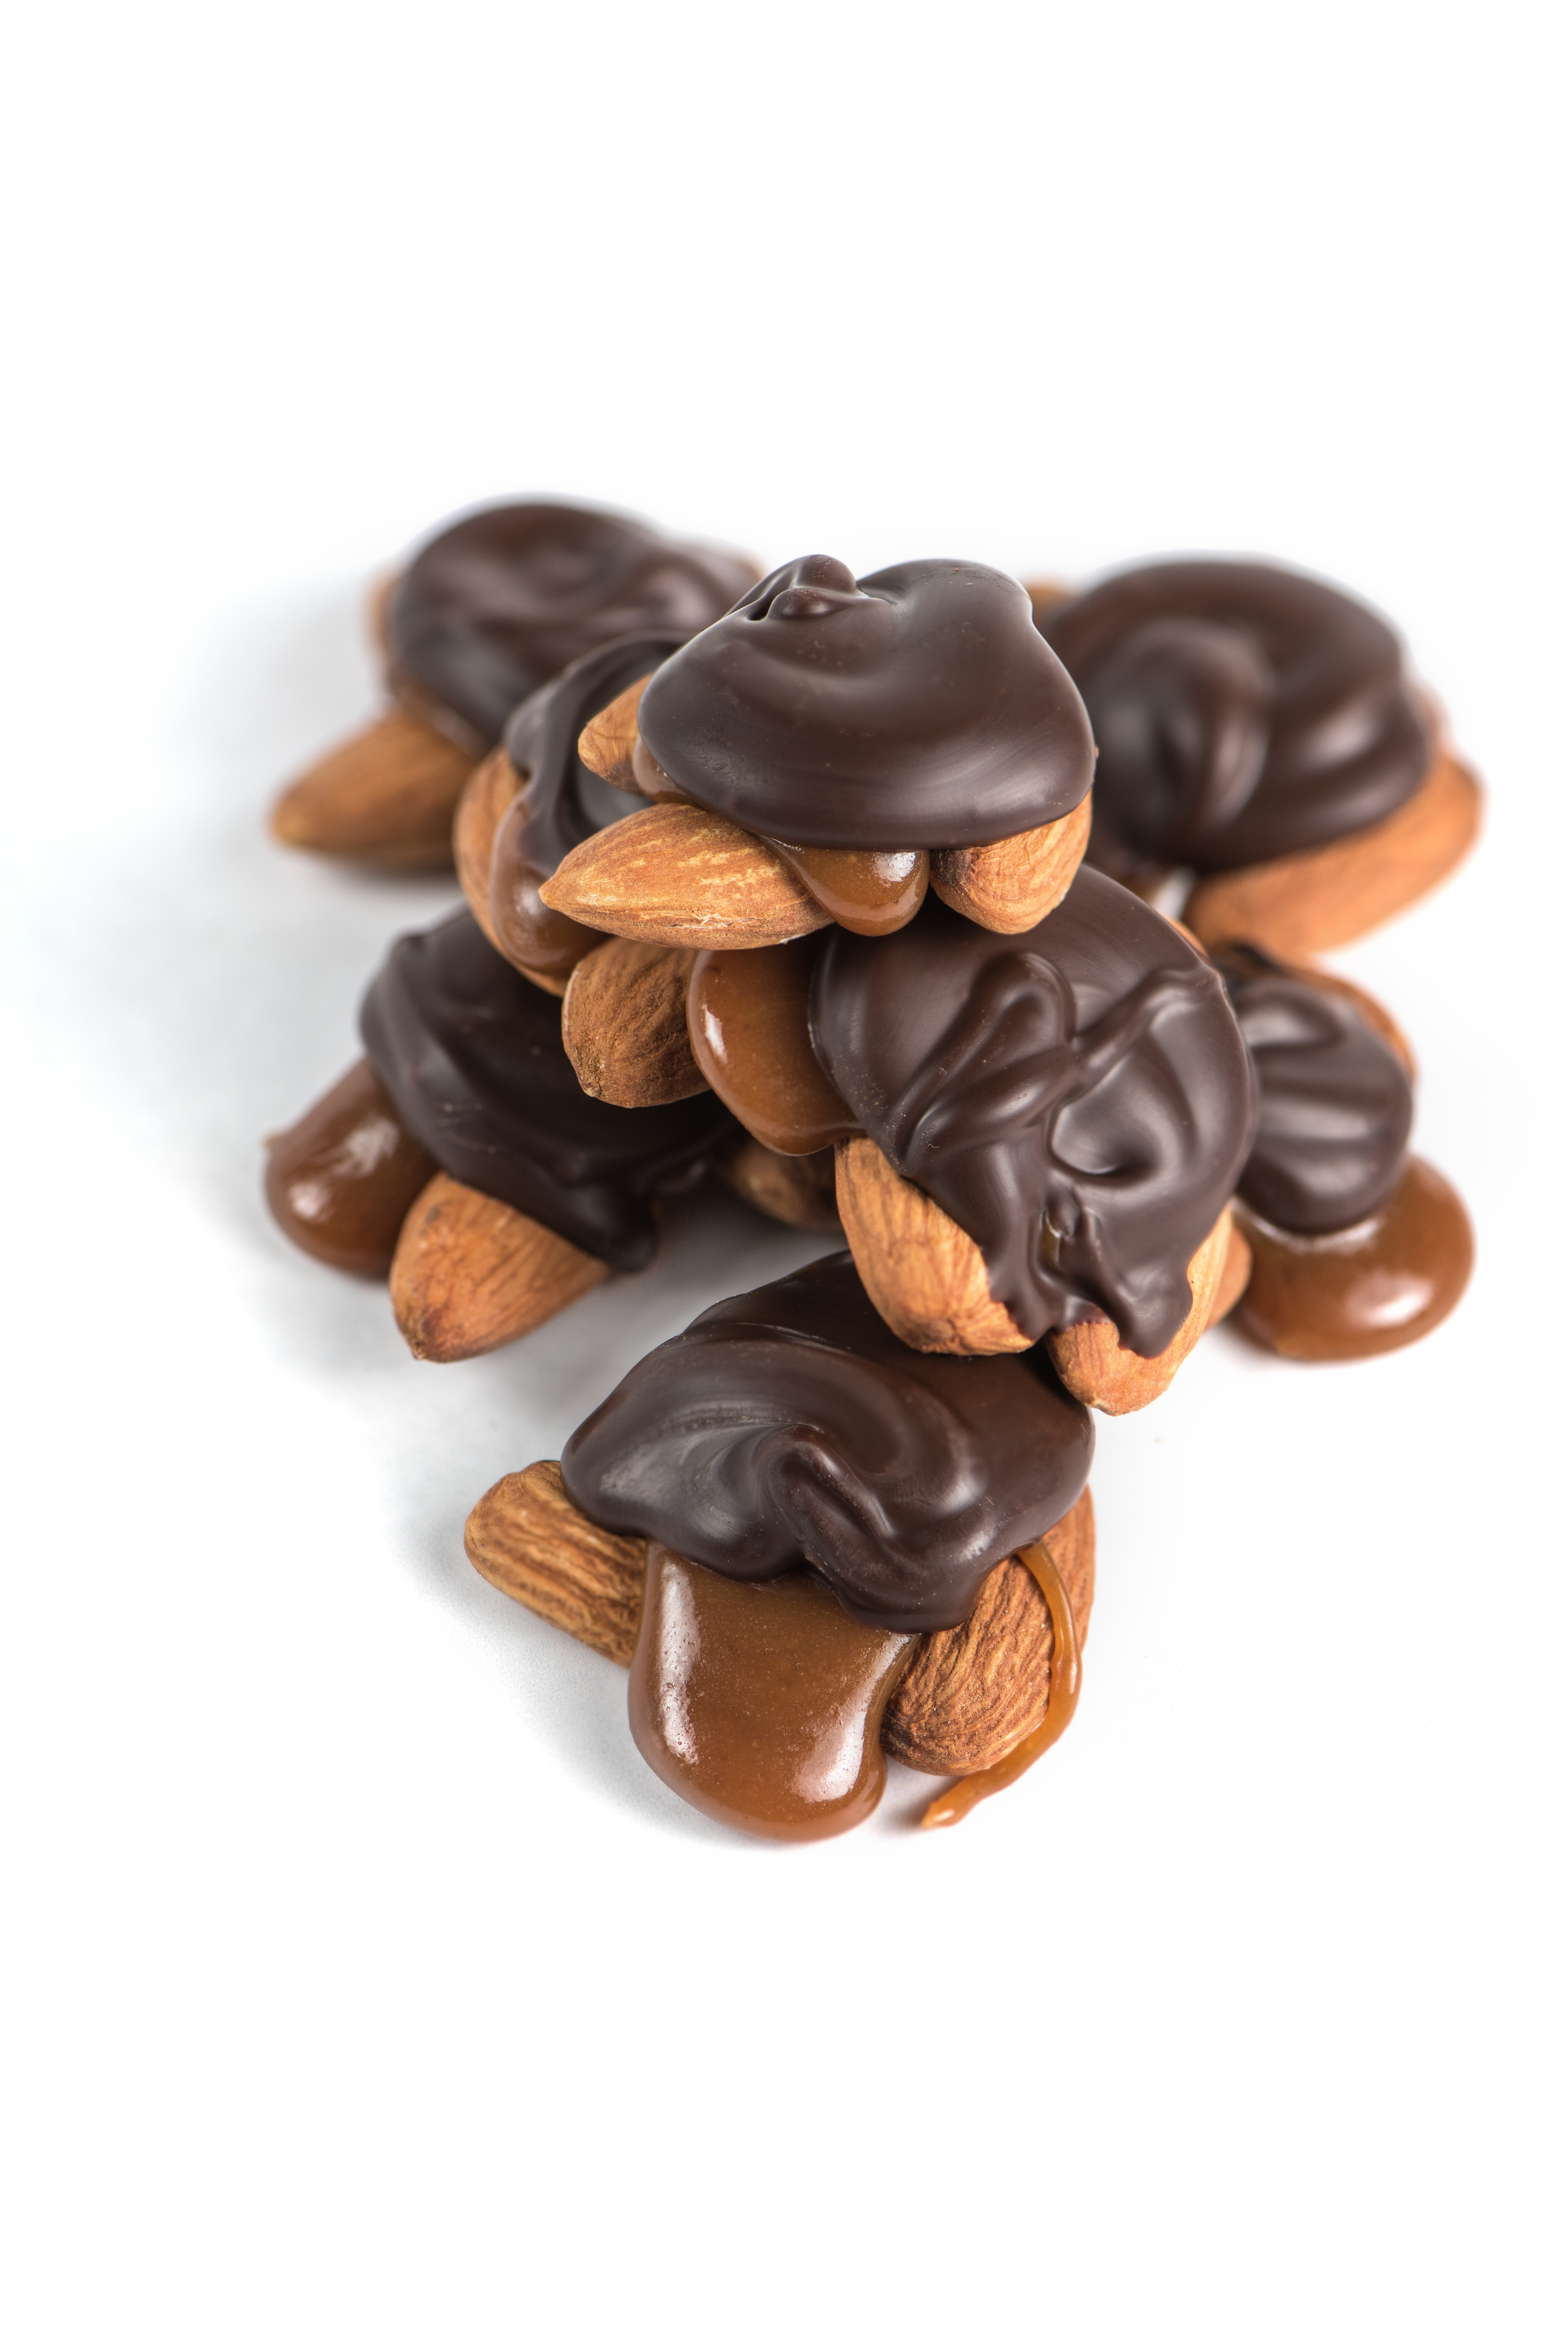 Sweet chocolate turtles with almonds and salted caramel.